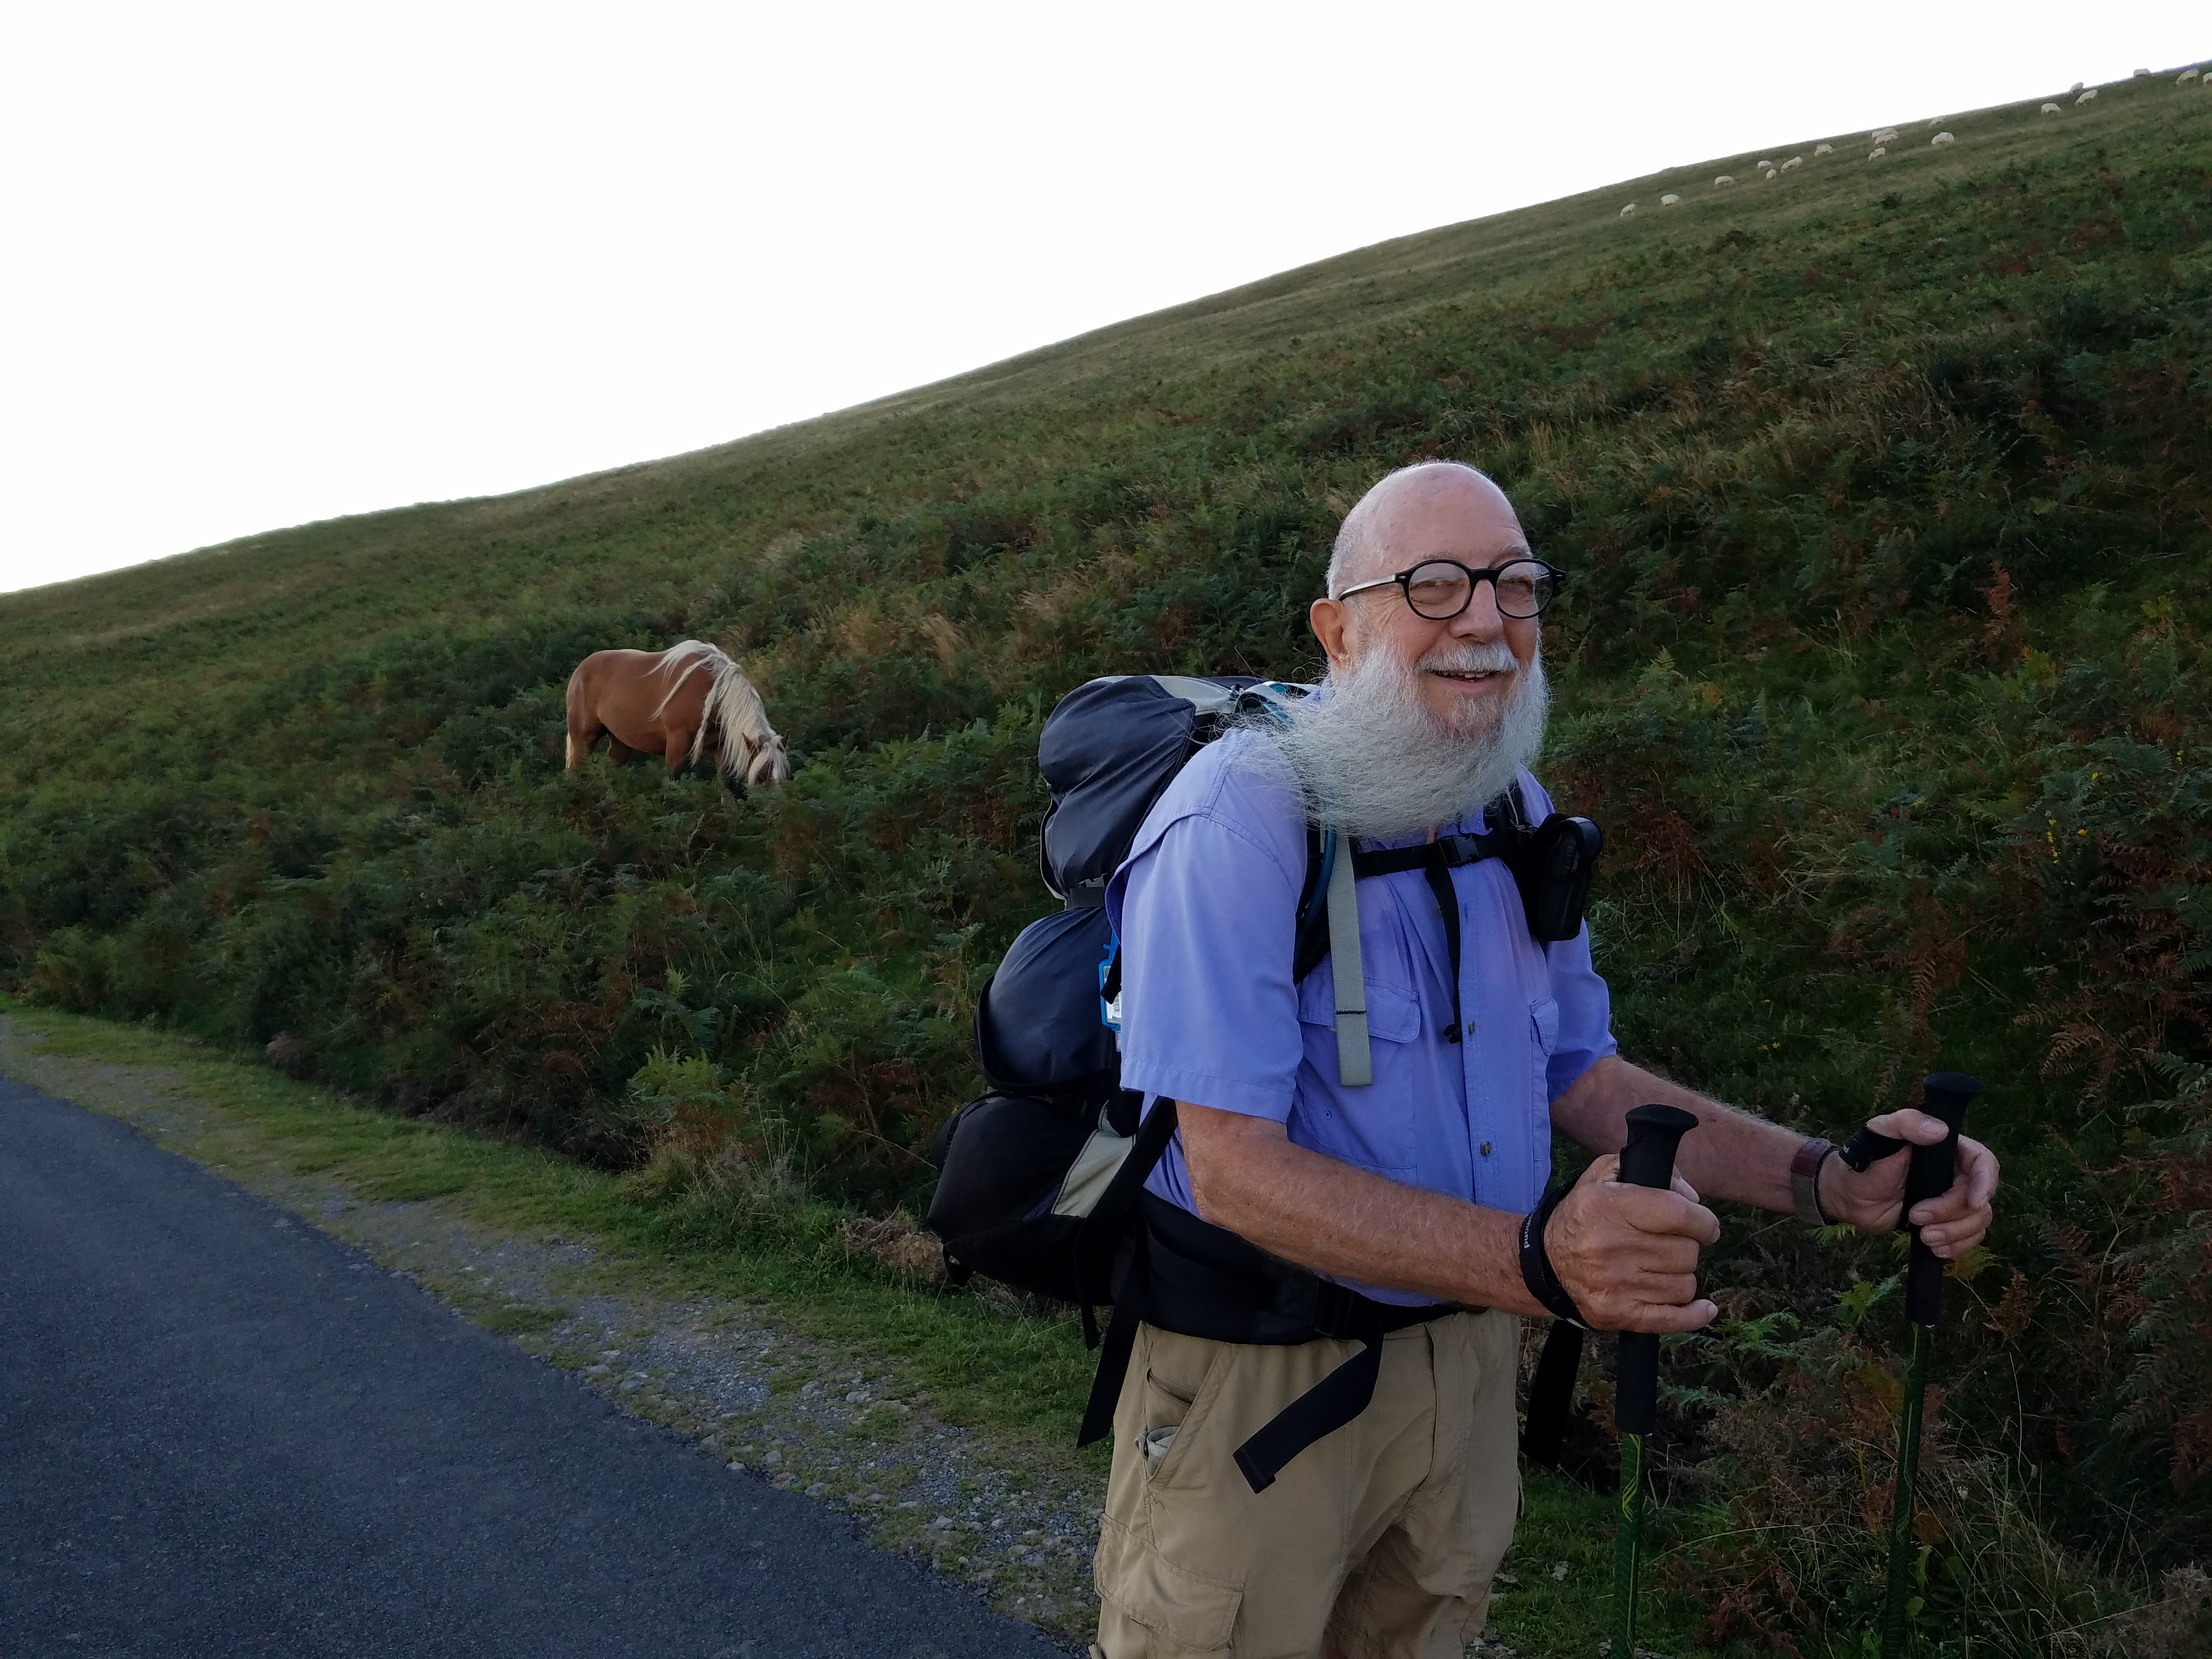 CfG hiker Wil Reding shares his story